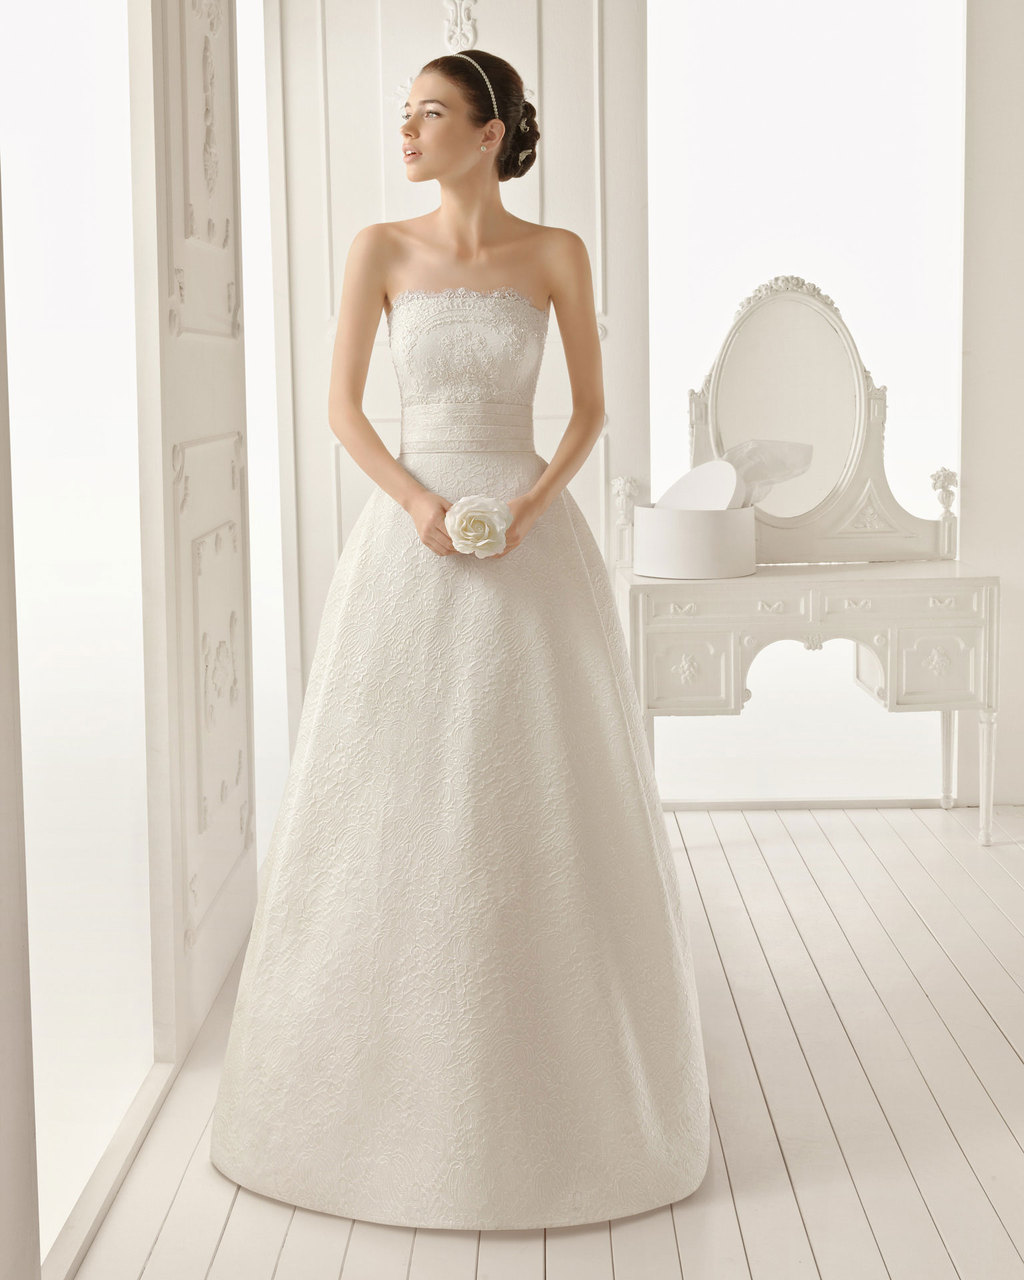 2013 wedding dress Aire Barcelona bridal gowns ribete